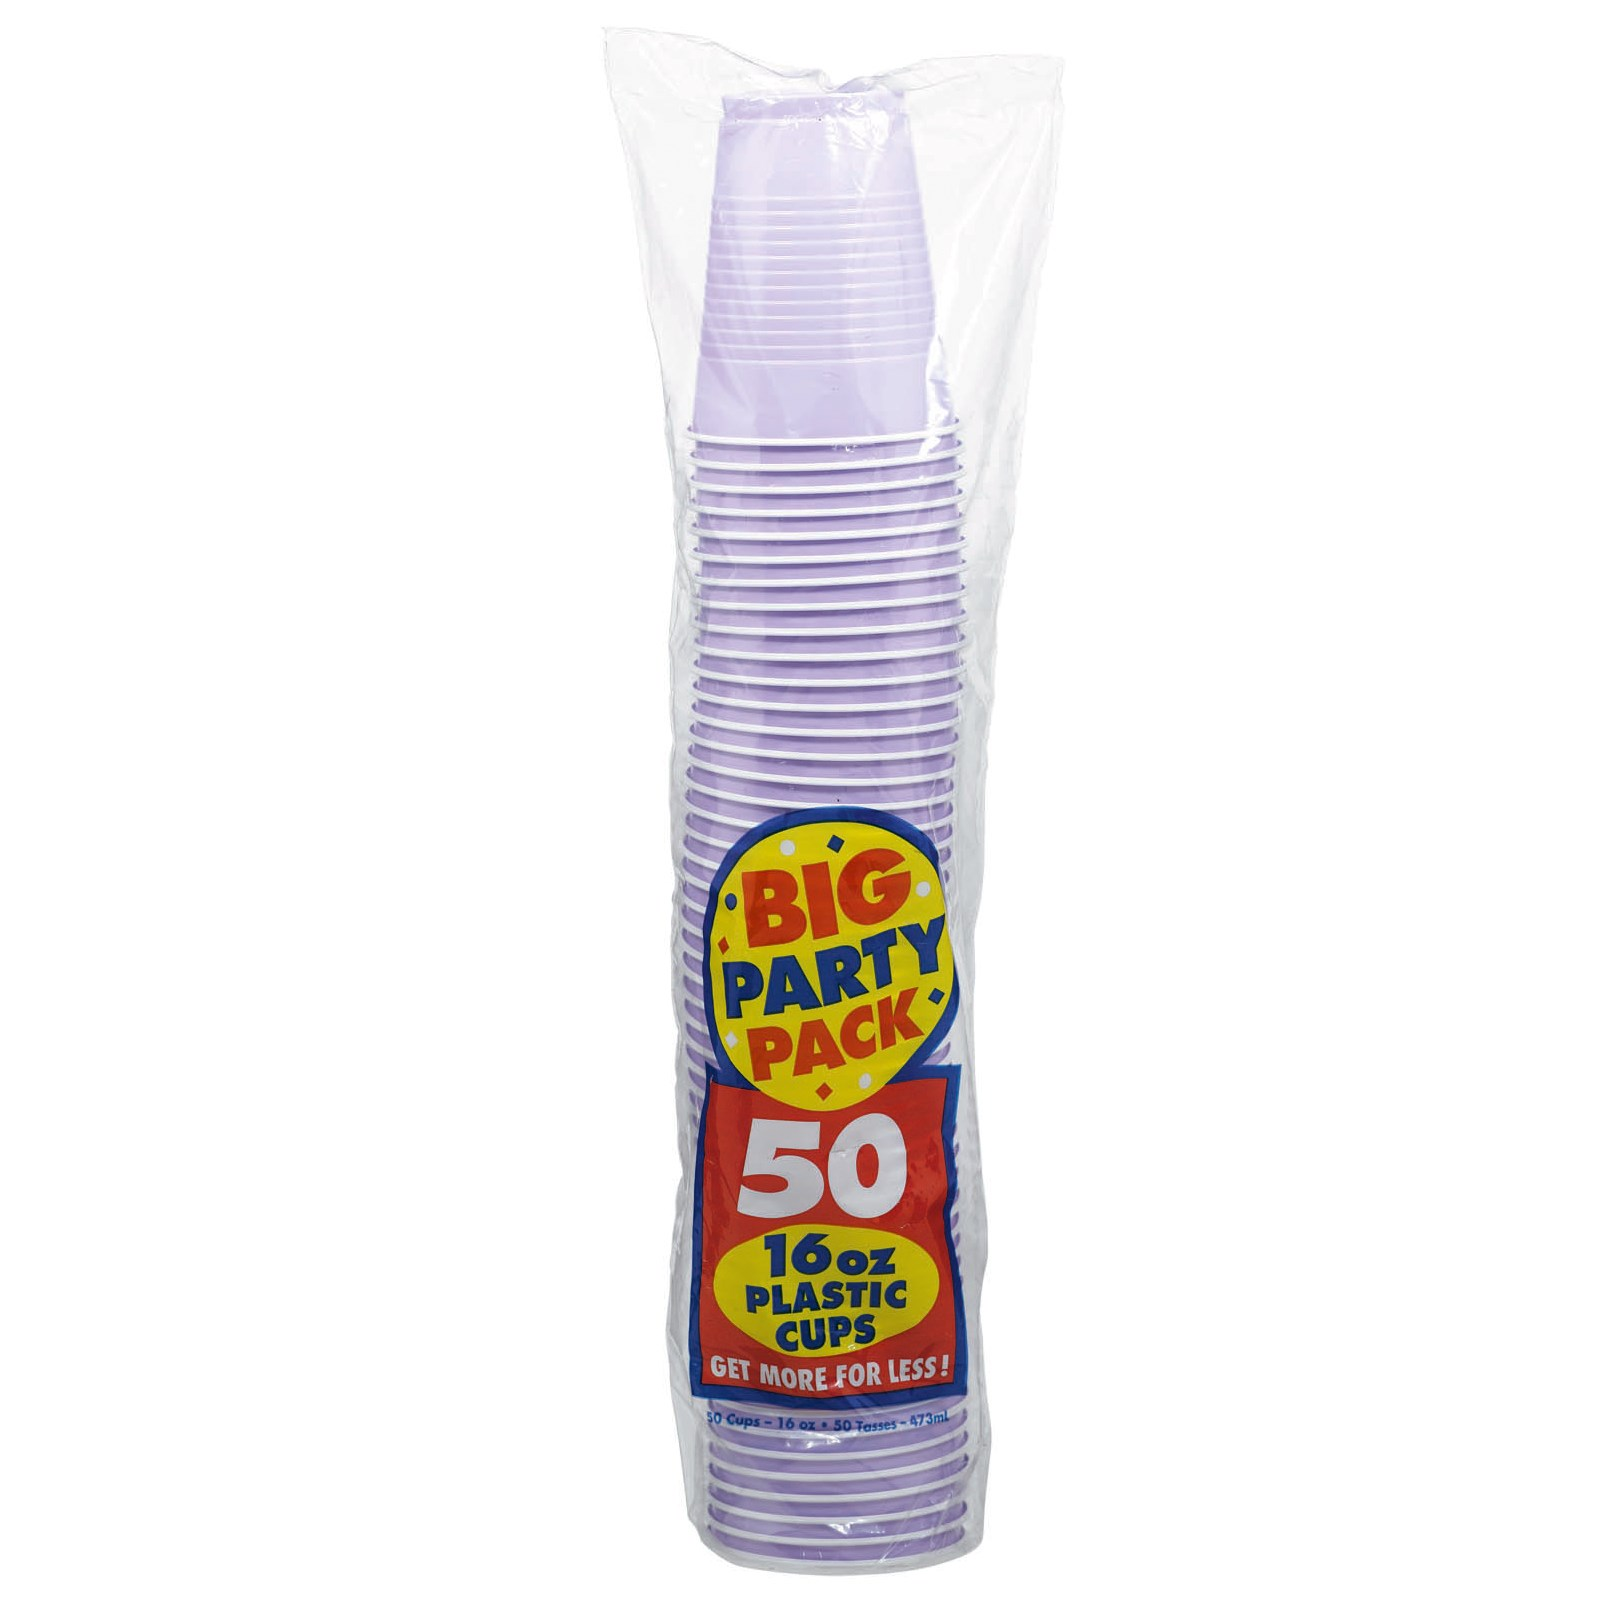 Lavender Big Party Pack 16 oz. Plastic Cups kids birthday partyware